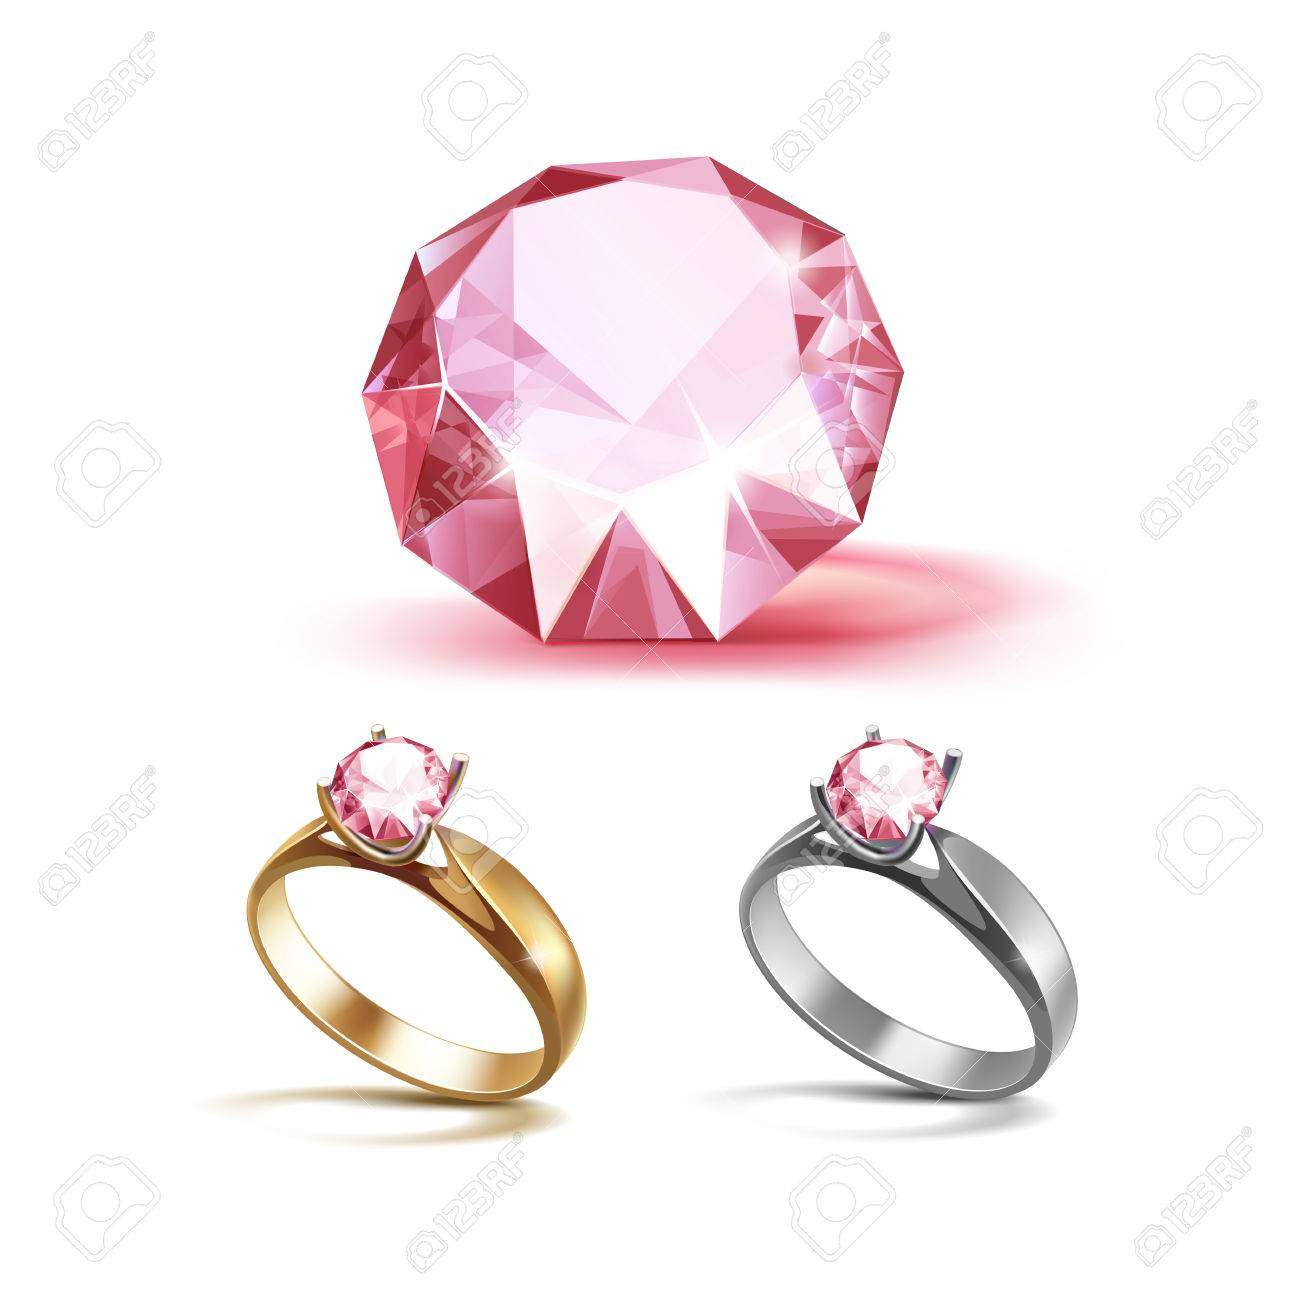 Set Of Gold And Siver Engagement Rings With Pink Shiny Clear ...